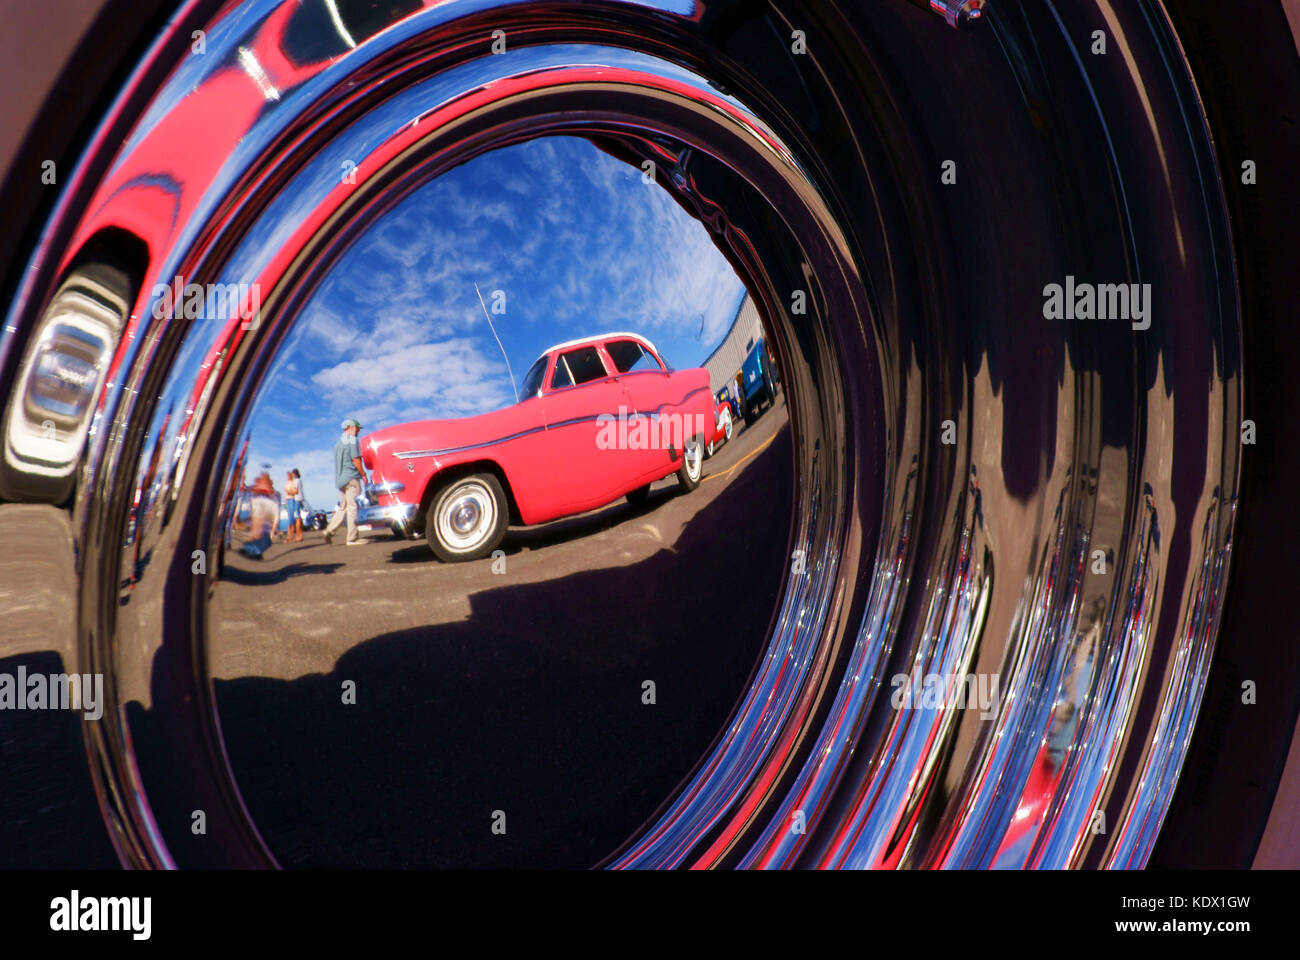 Pink Car Reflection in Hubcap Stock Photo